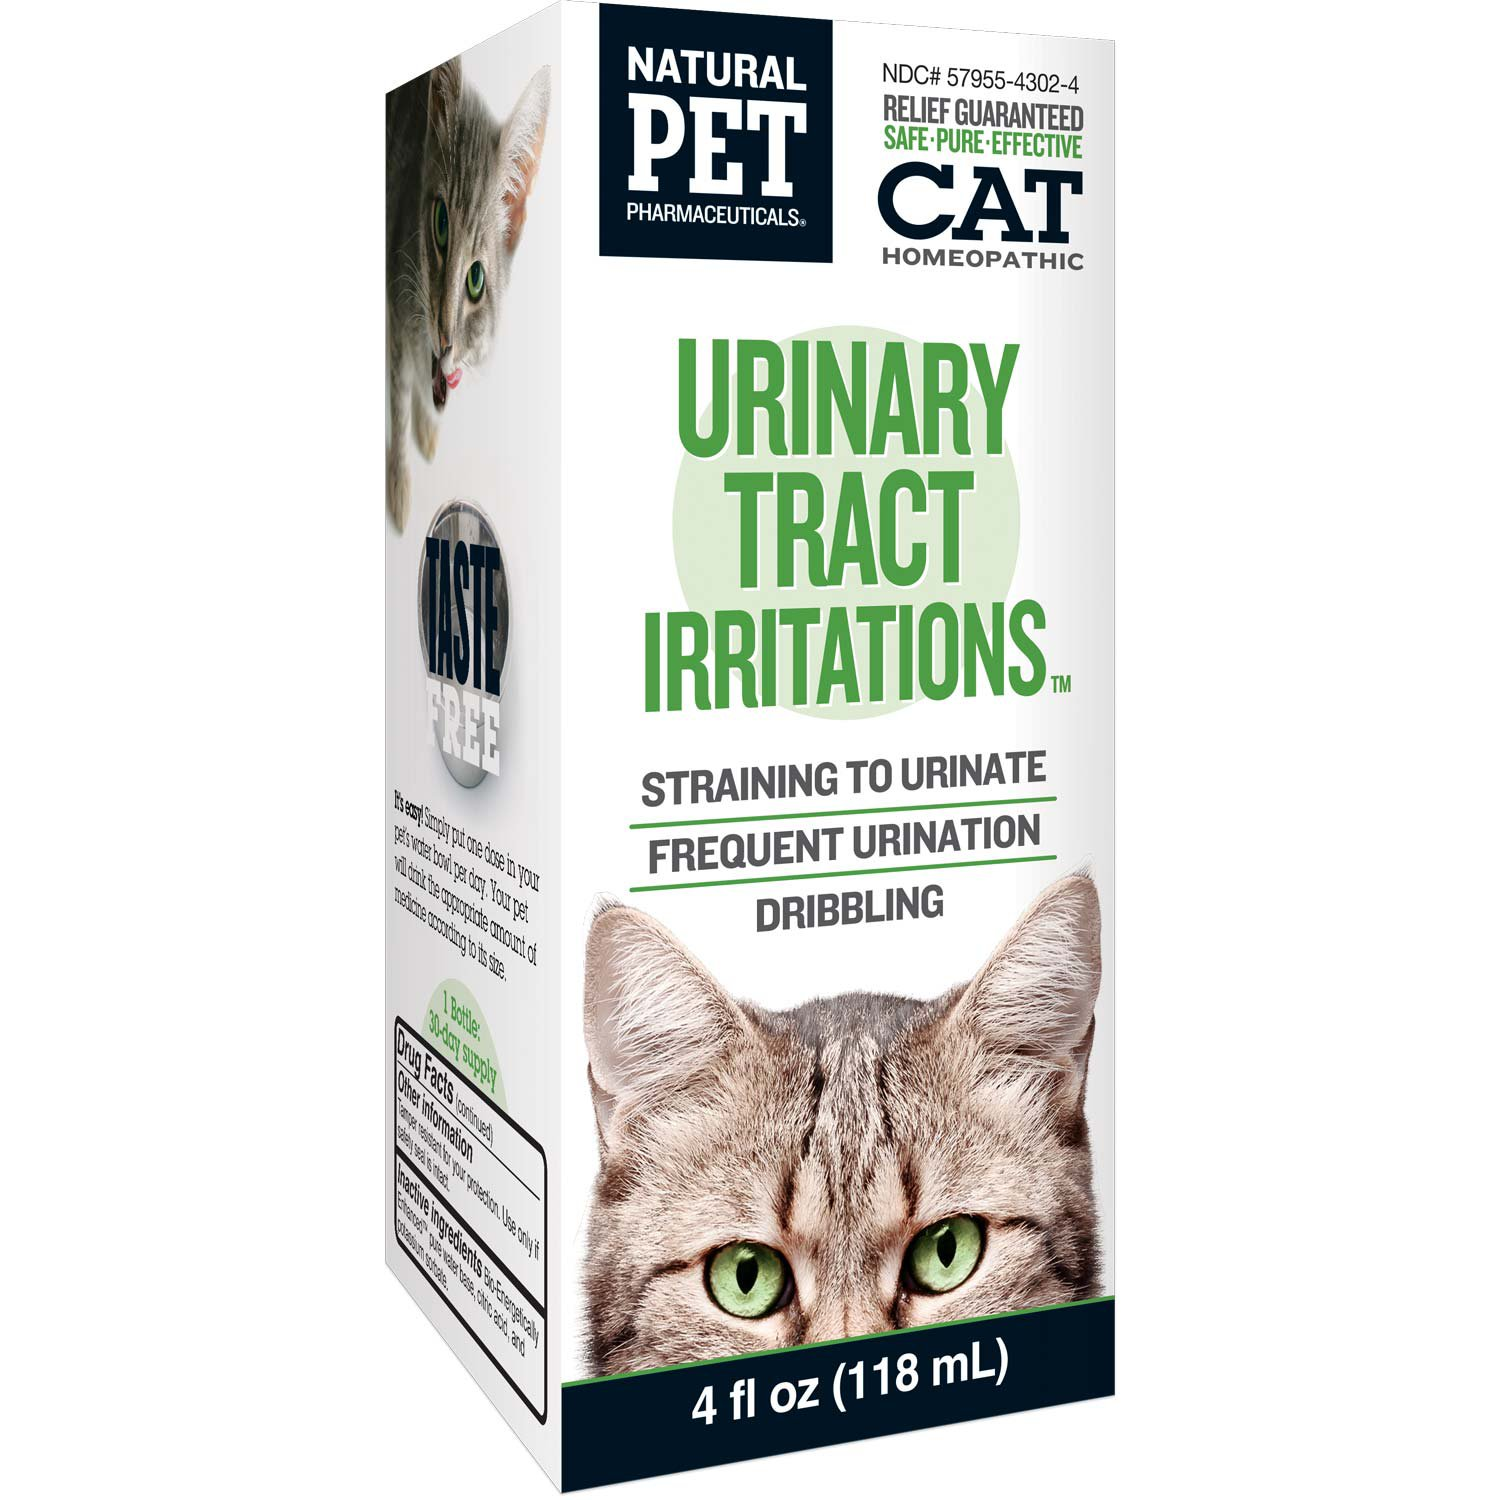 Cat Urinary Infection Natural Treatment